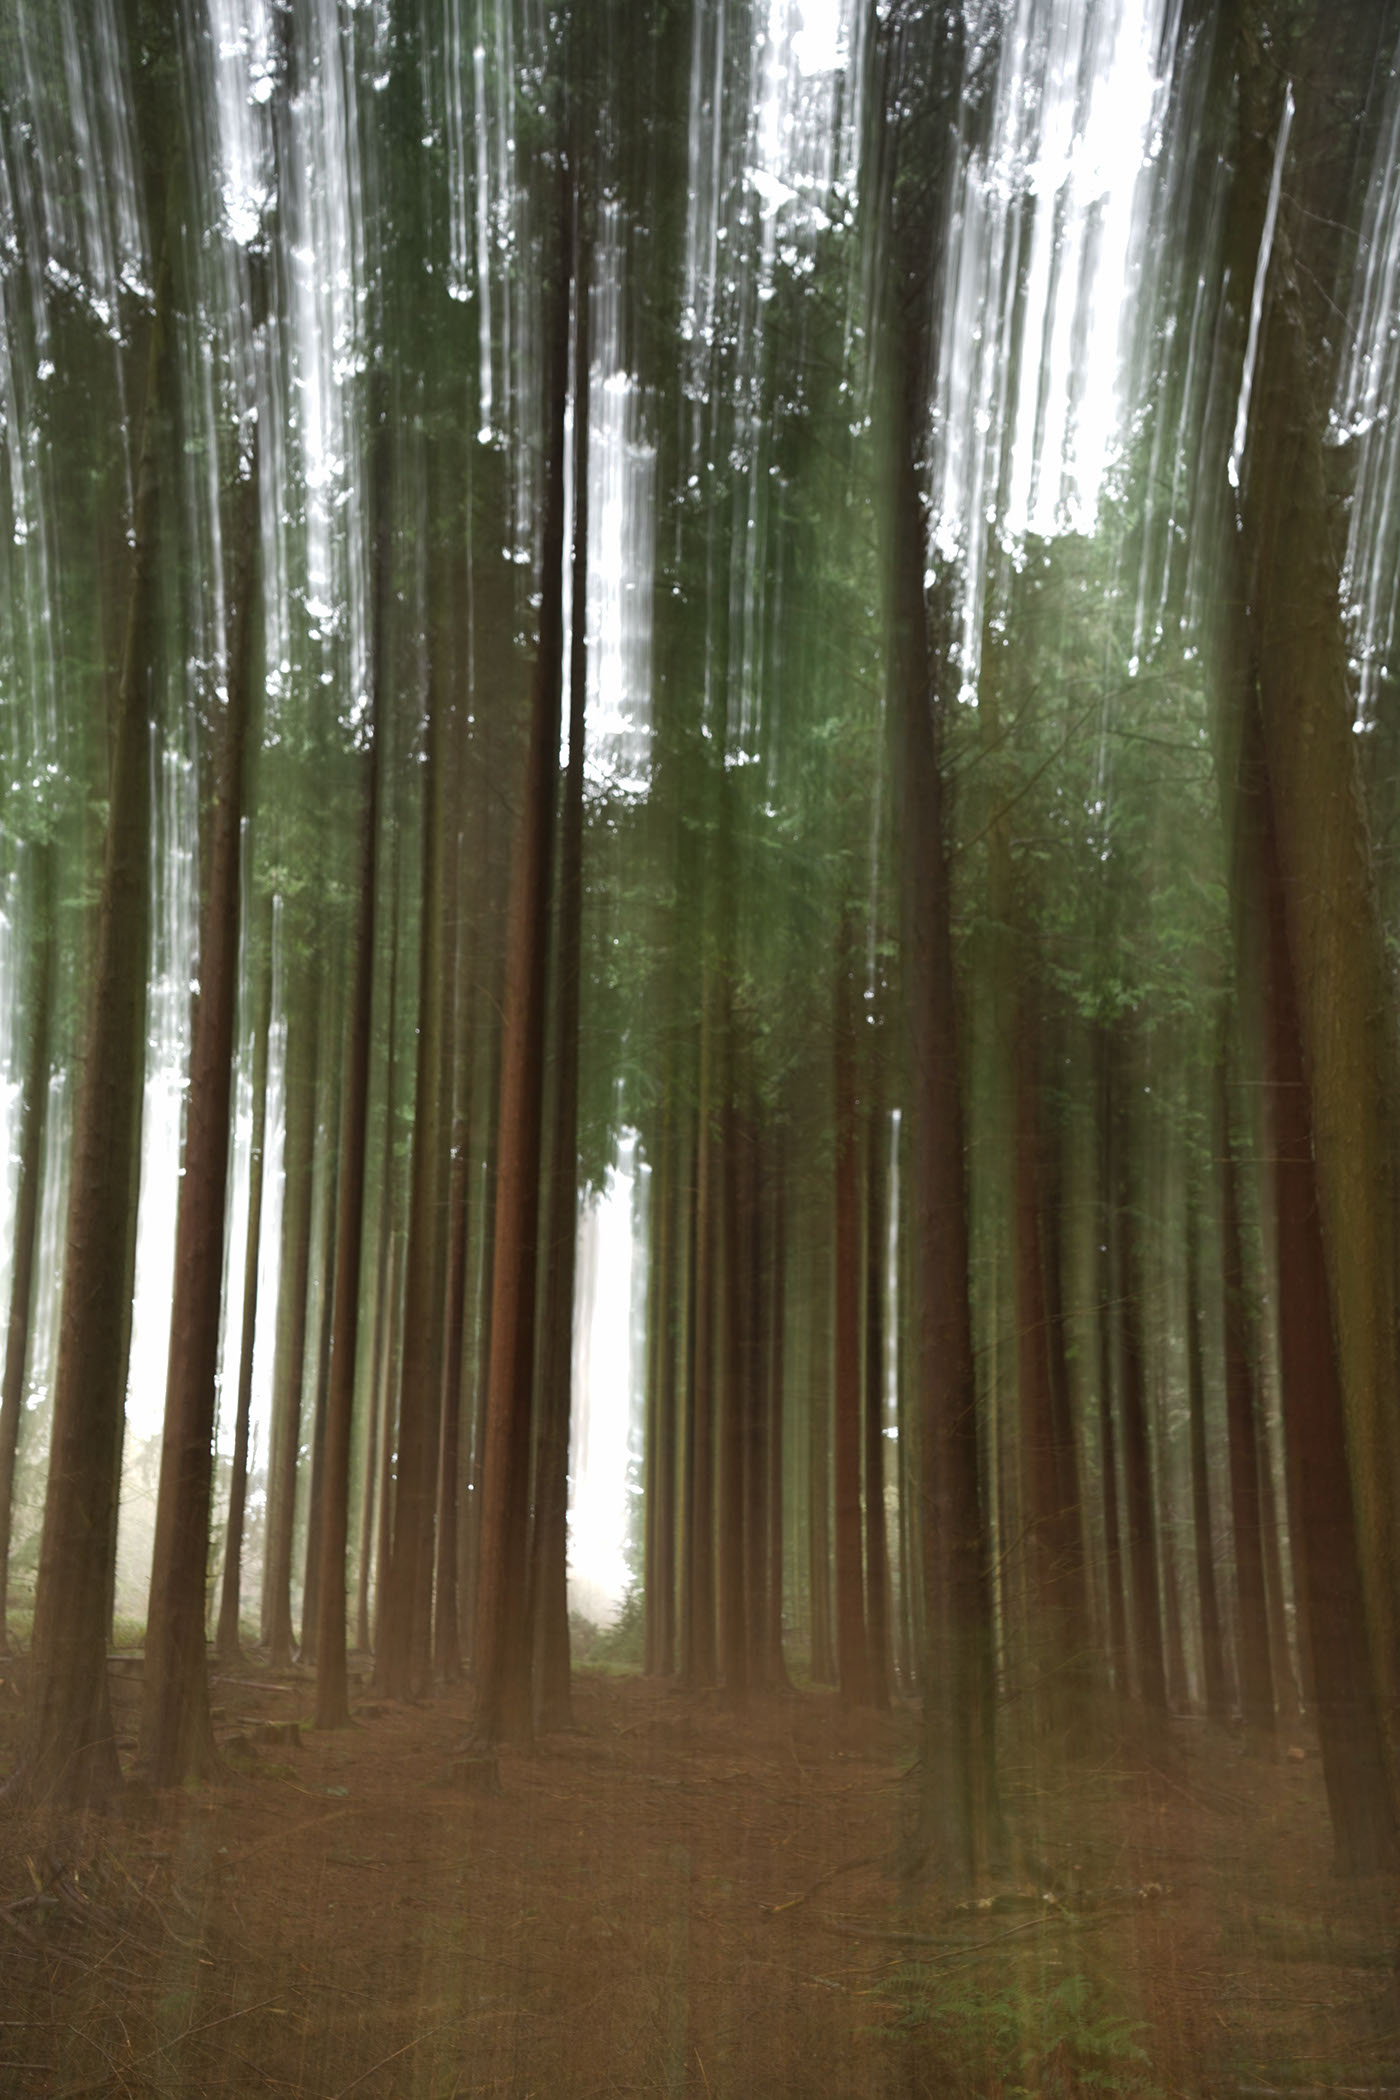 Shinrin Yoku forest bathing trees long exposure panning woods blurred movement blur lightroom manfrotto Sony Alpha A7ii Photography